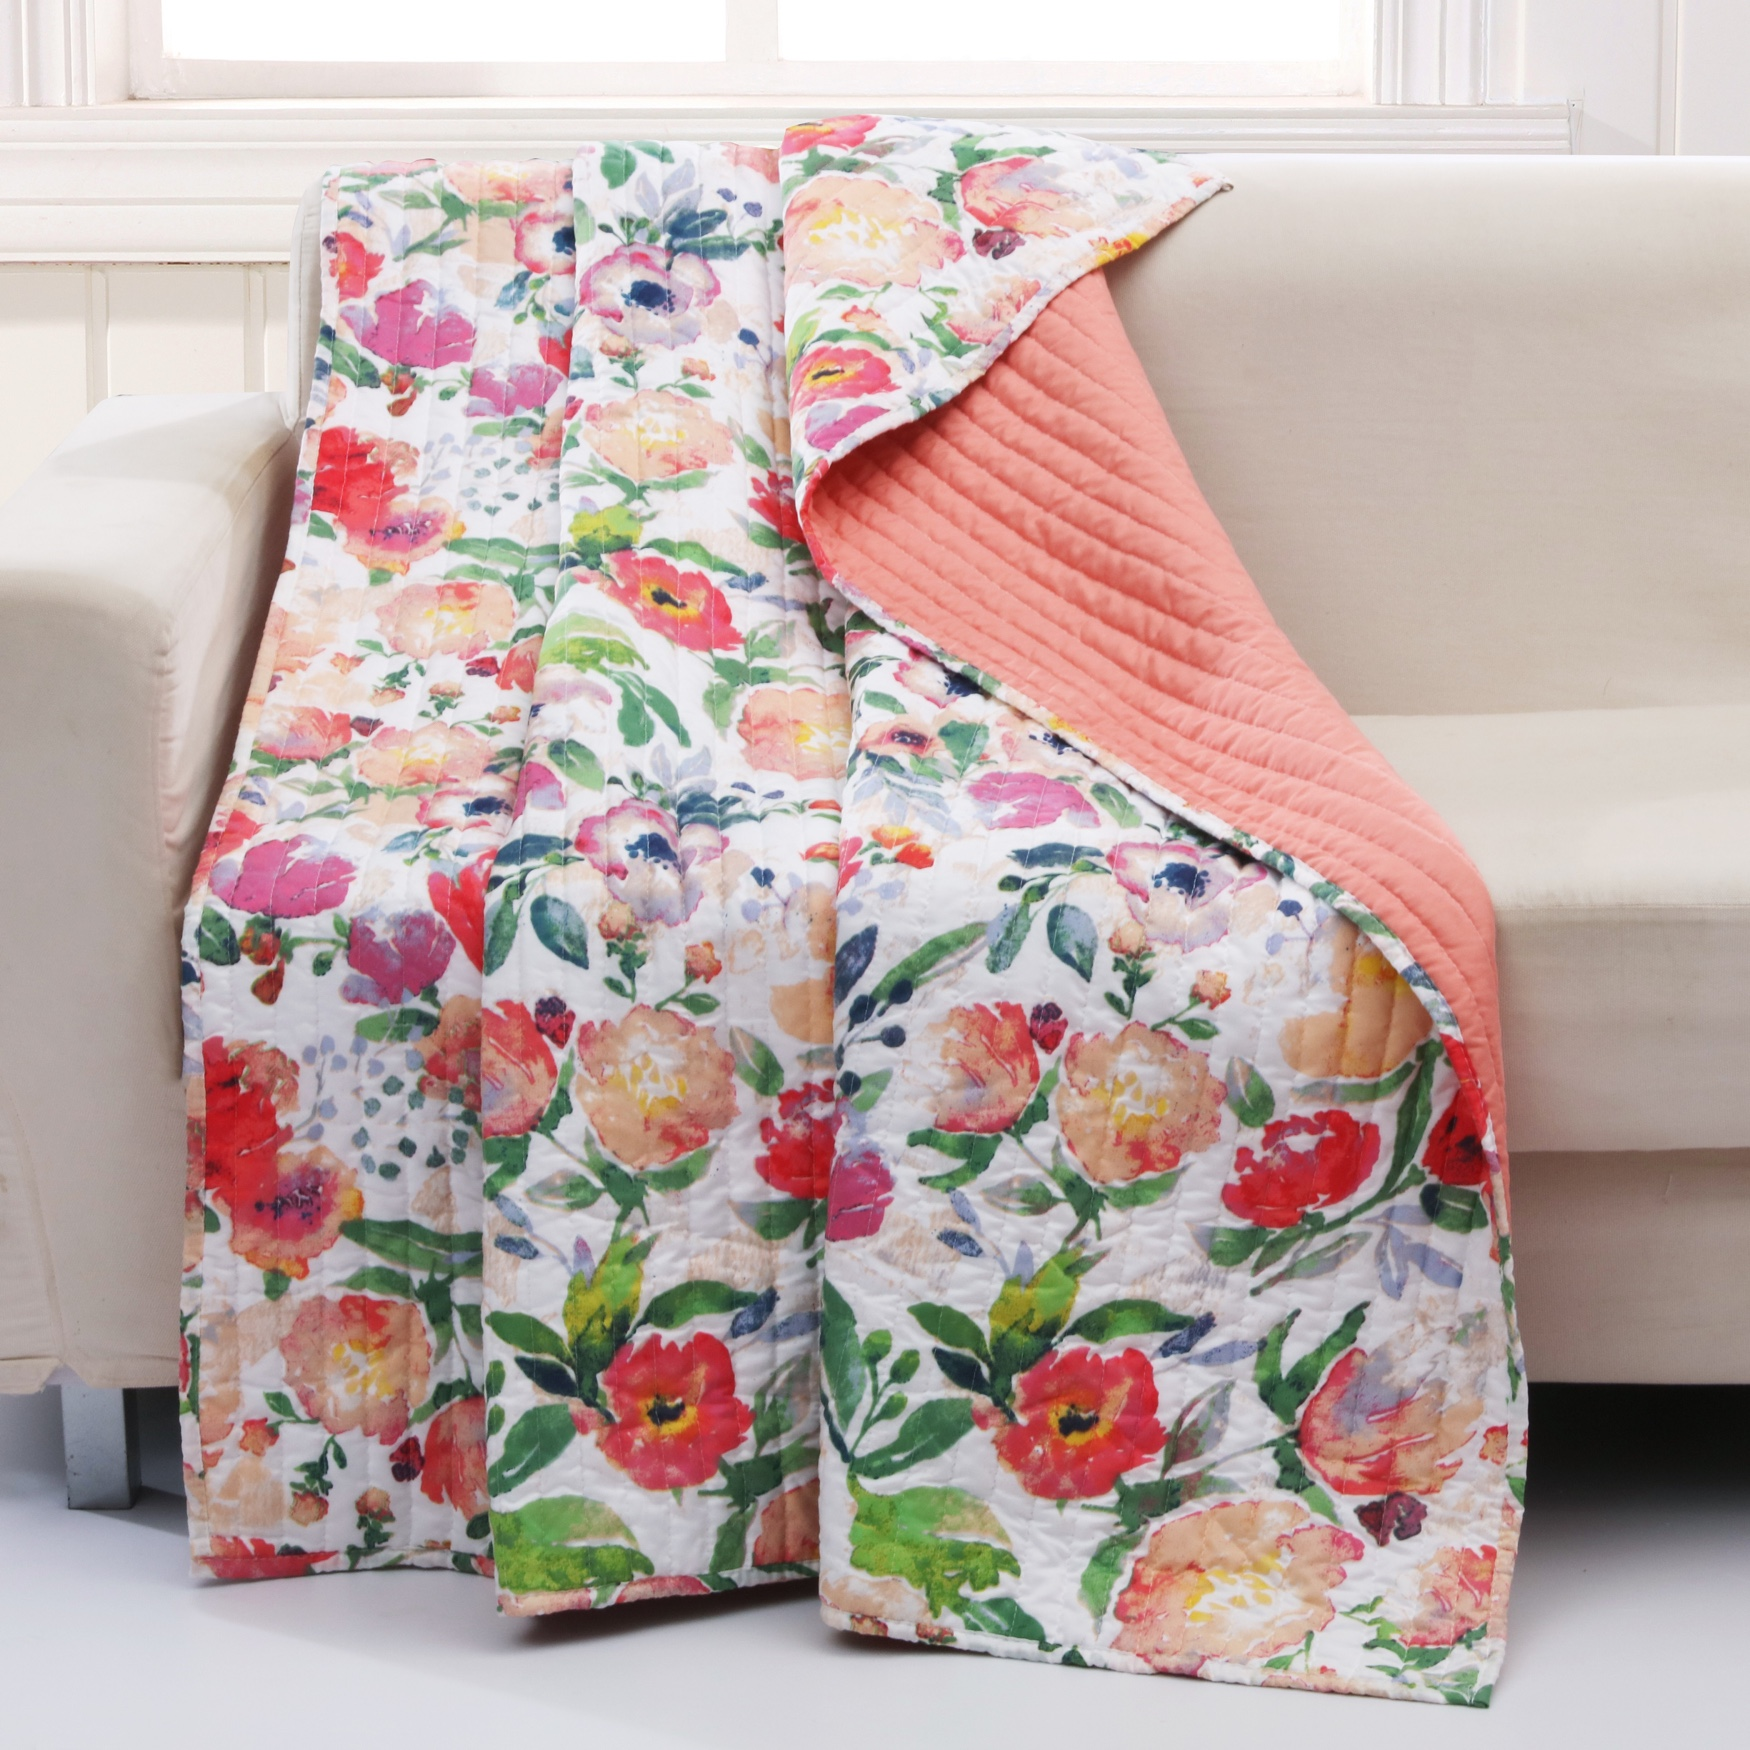 Barefoot Bungalow Blossom Quilted Throw Blanket, MULTI